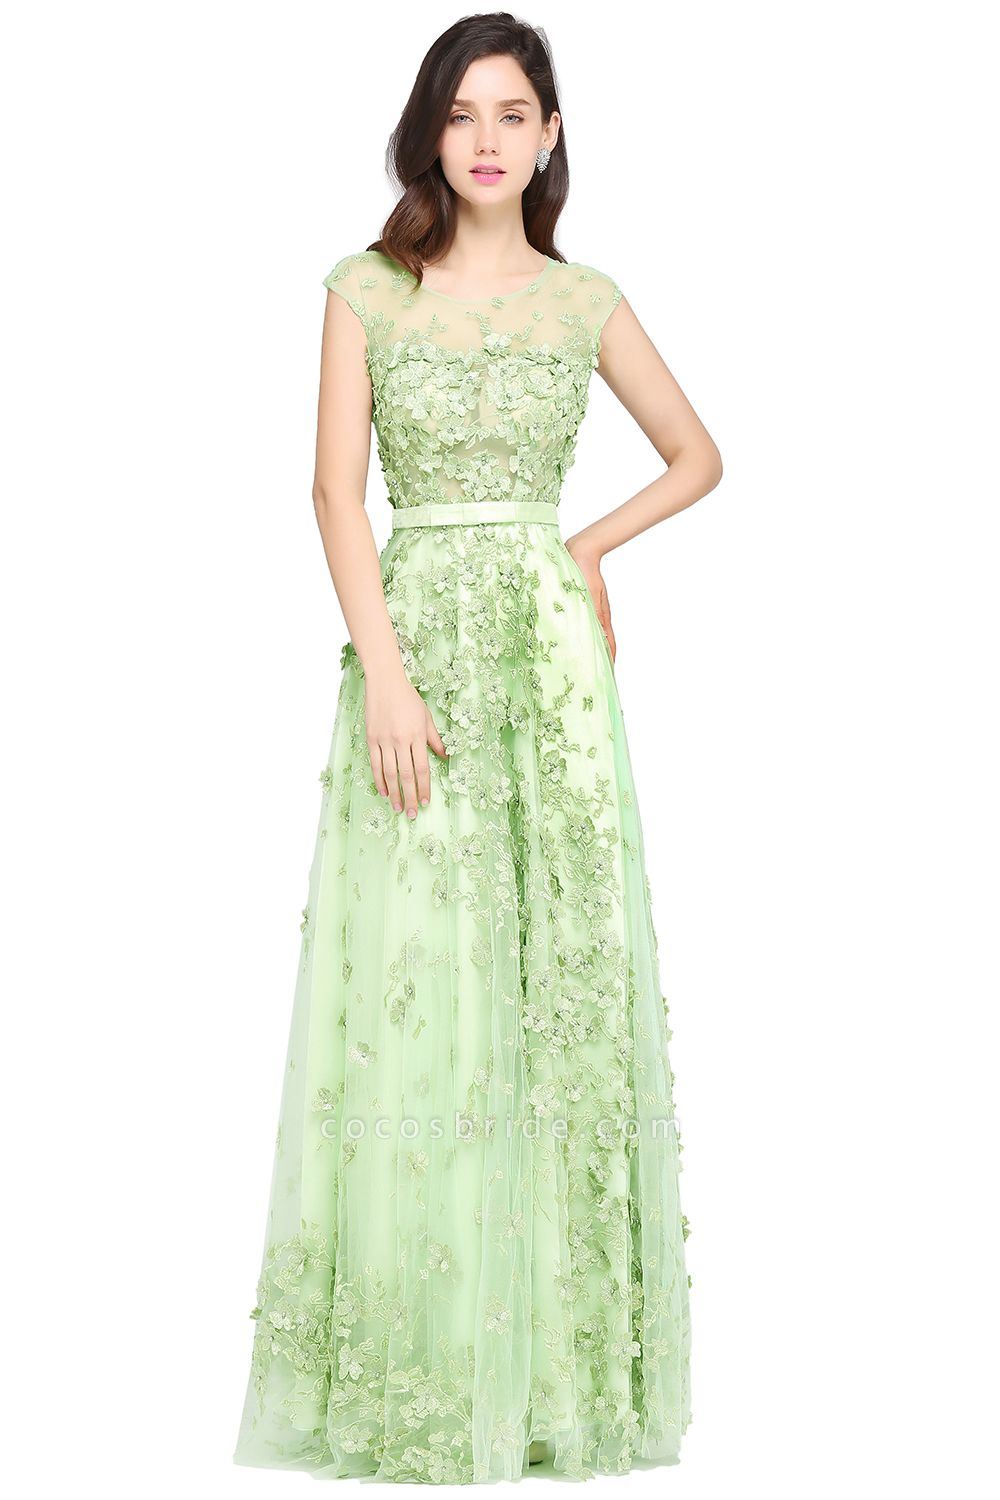 ARDEN | A-line Floor Length Tulle Green Prom Dresses with Appliques